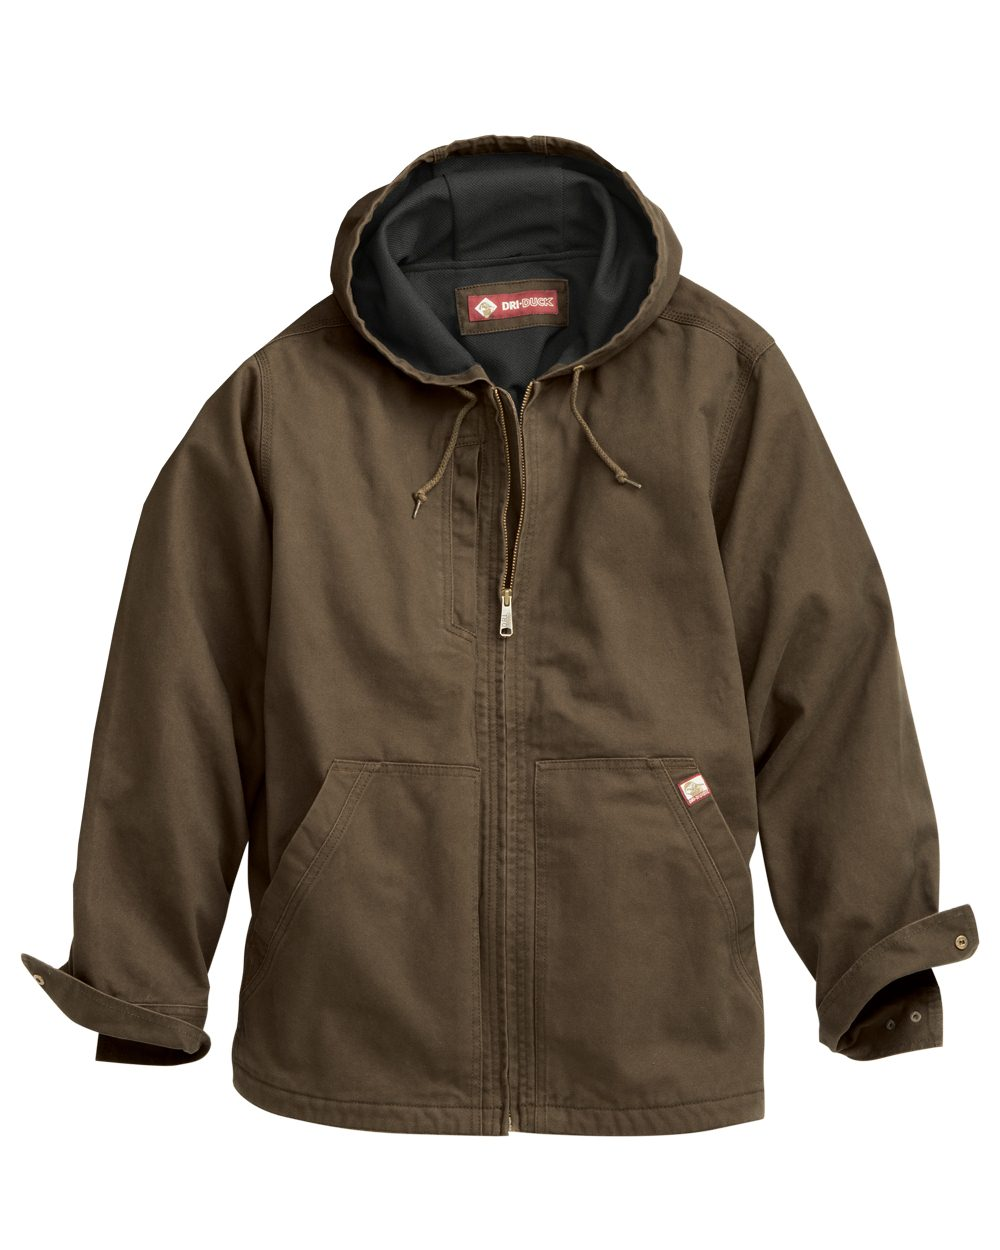 DRI DUCK Laredo Canvas Jacket with Thermal Lining - ...